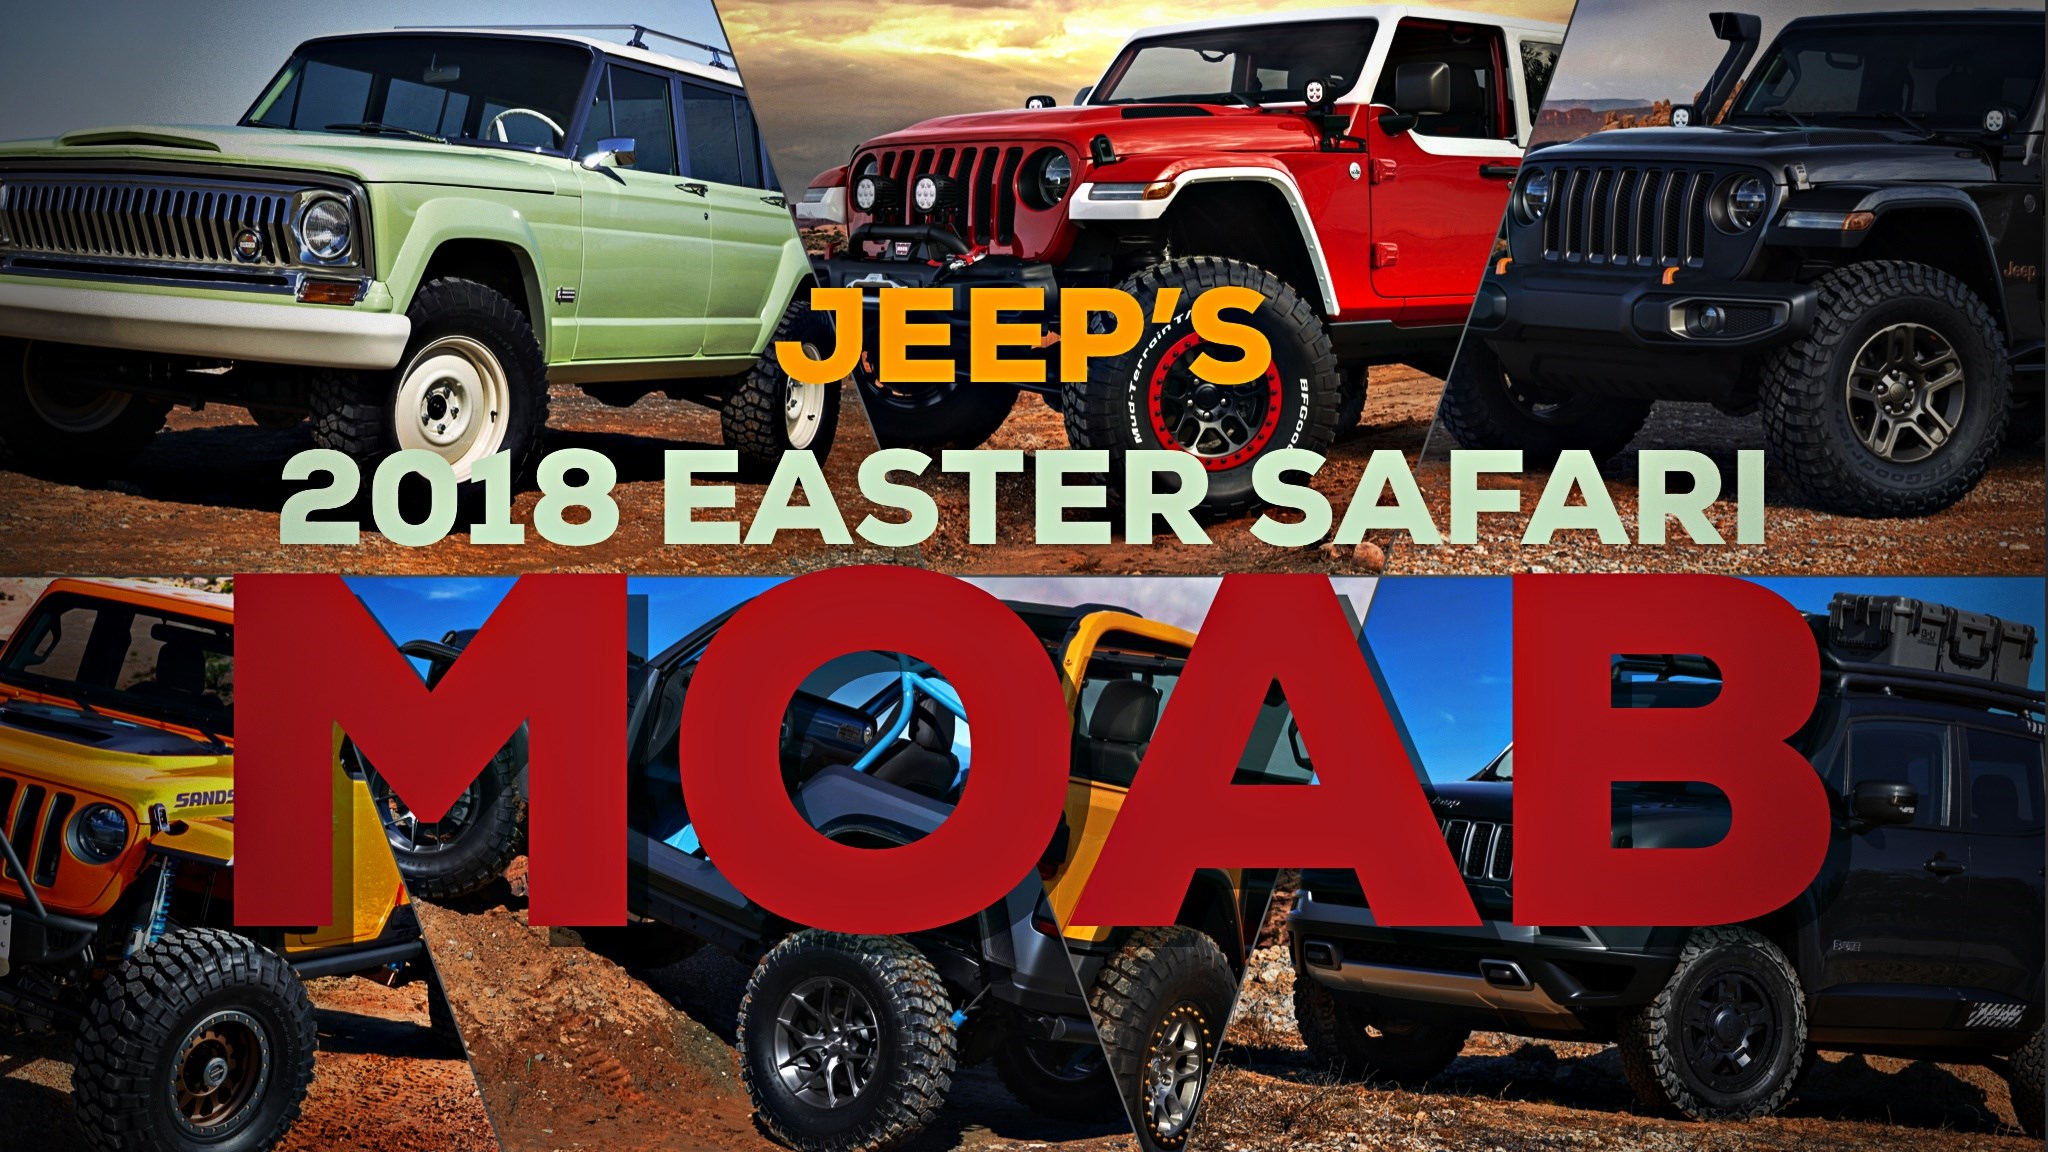 Jeep Reveals 7 Concept 4x4s Ahead Of Annual Easter Safari